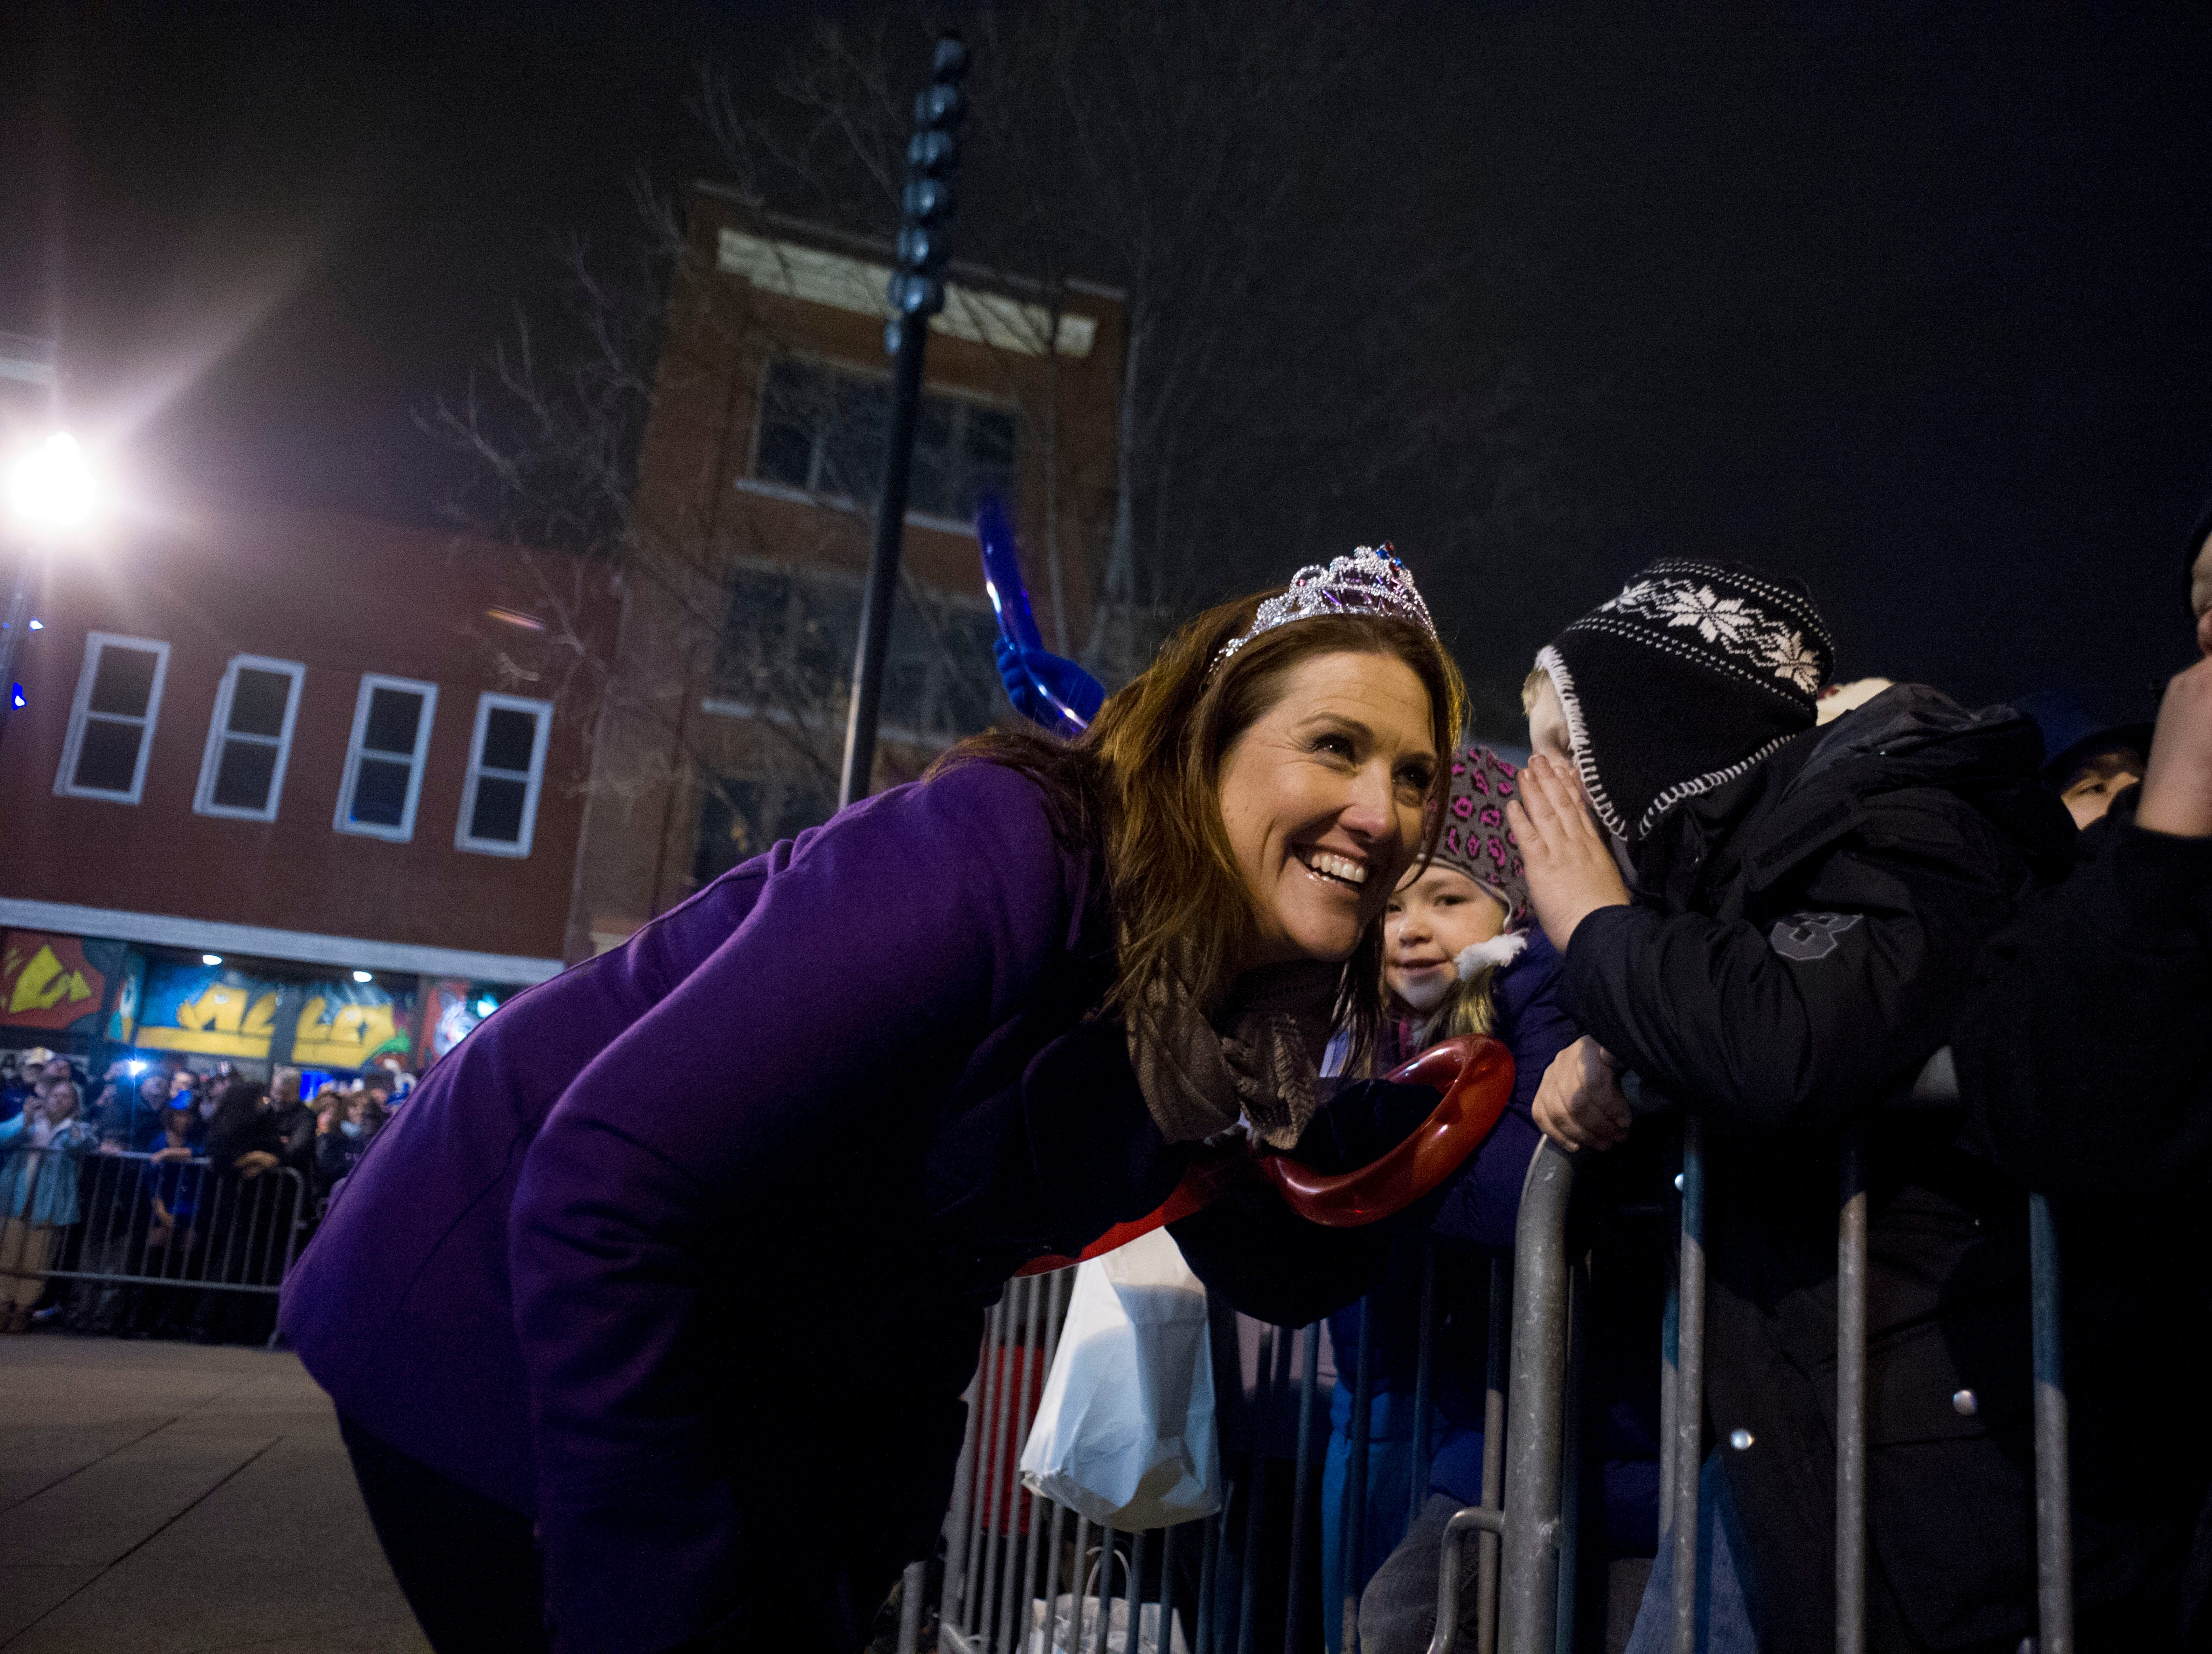 New Year's Eve emcee Erin Donovan meets with the crowd at Market Square on Monday, December 31, 2012.